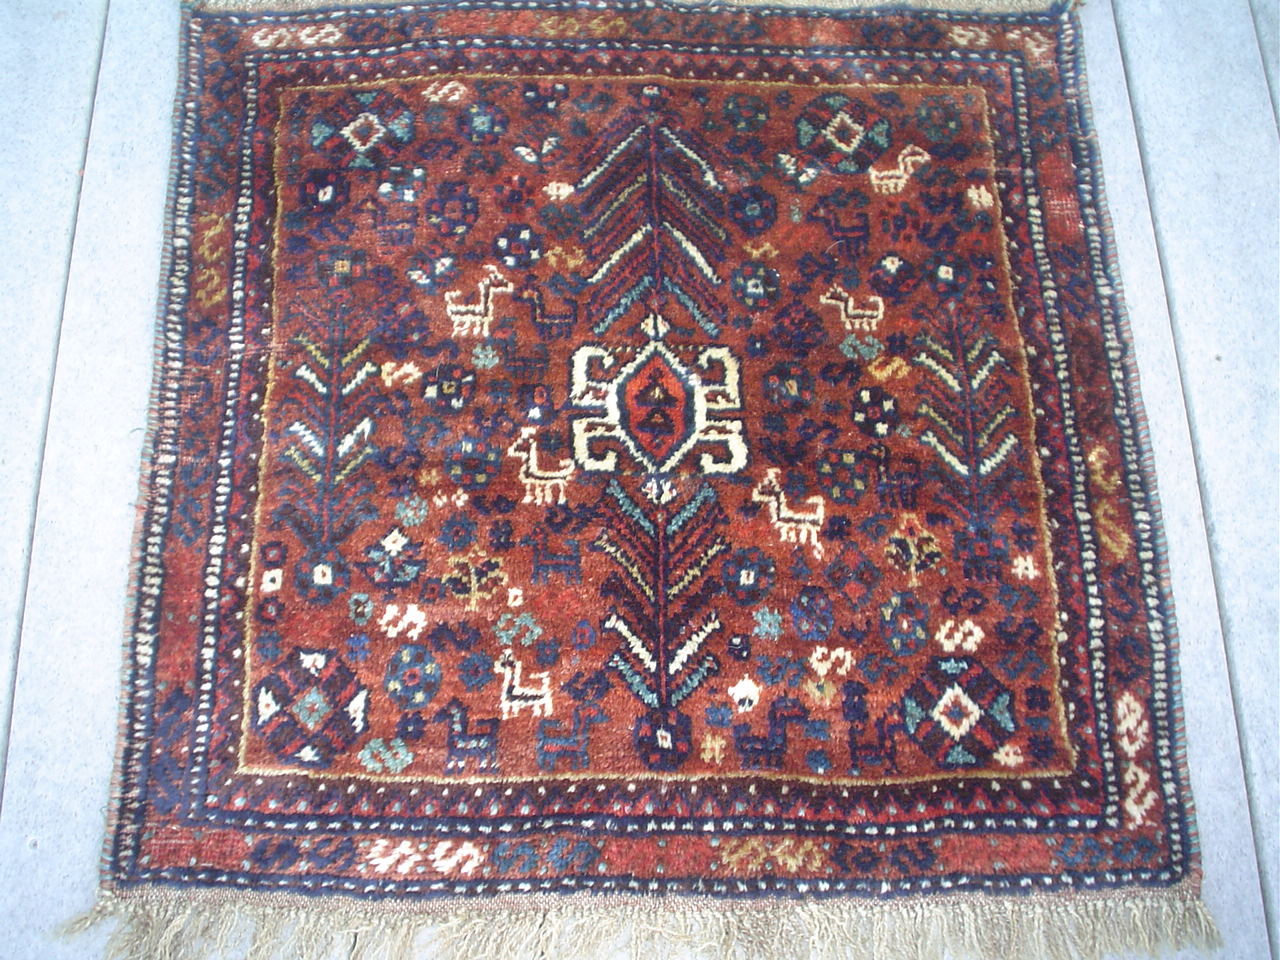 Small Persian Shiraz rug from the 1940's.